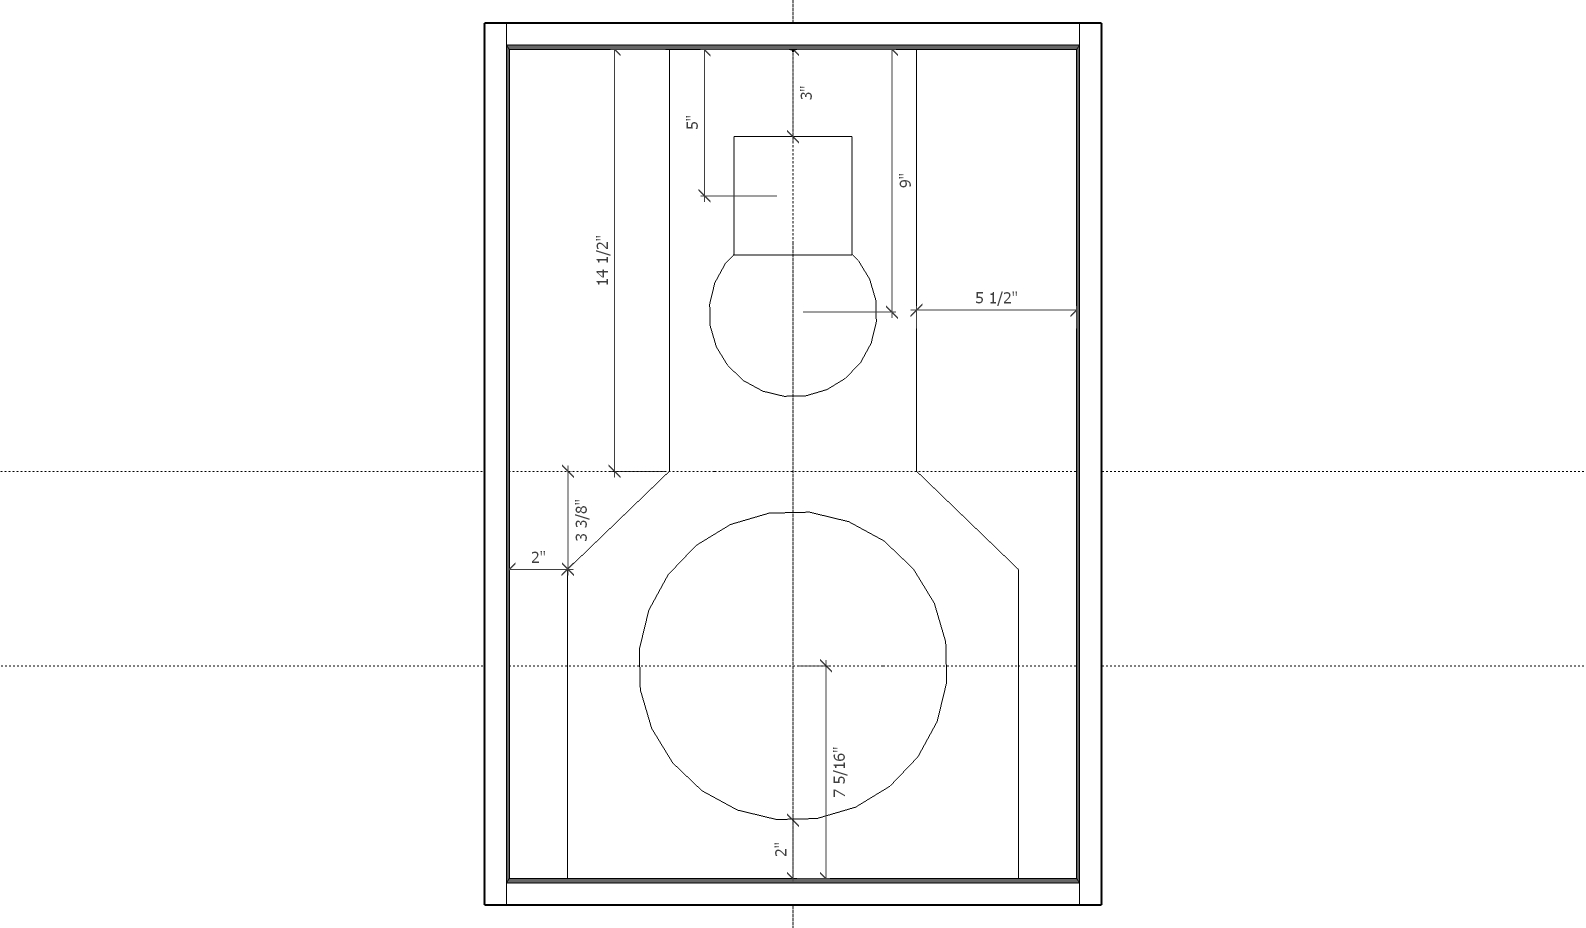 12 inch subwoofer wire diagram auto electrical wiring diagram related 12 inch subwoofer wire diagram